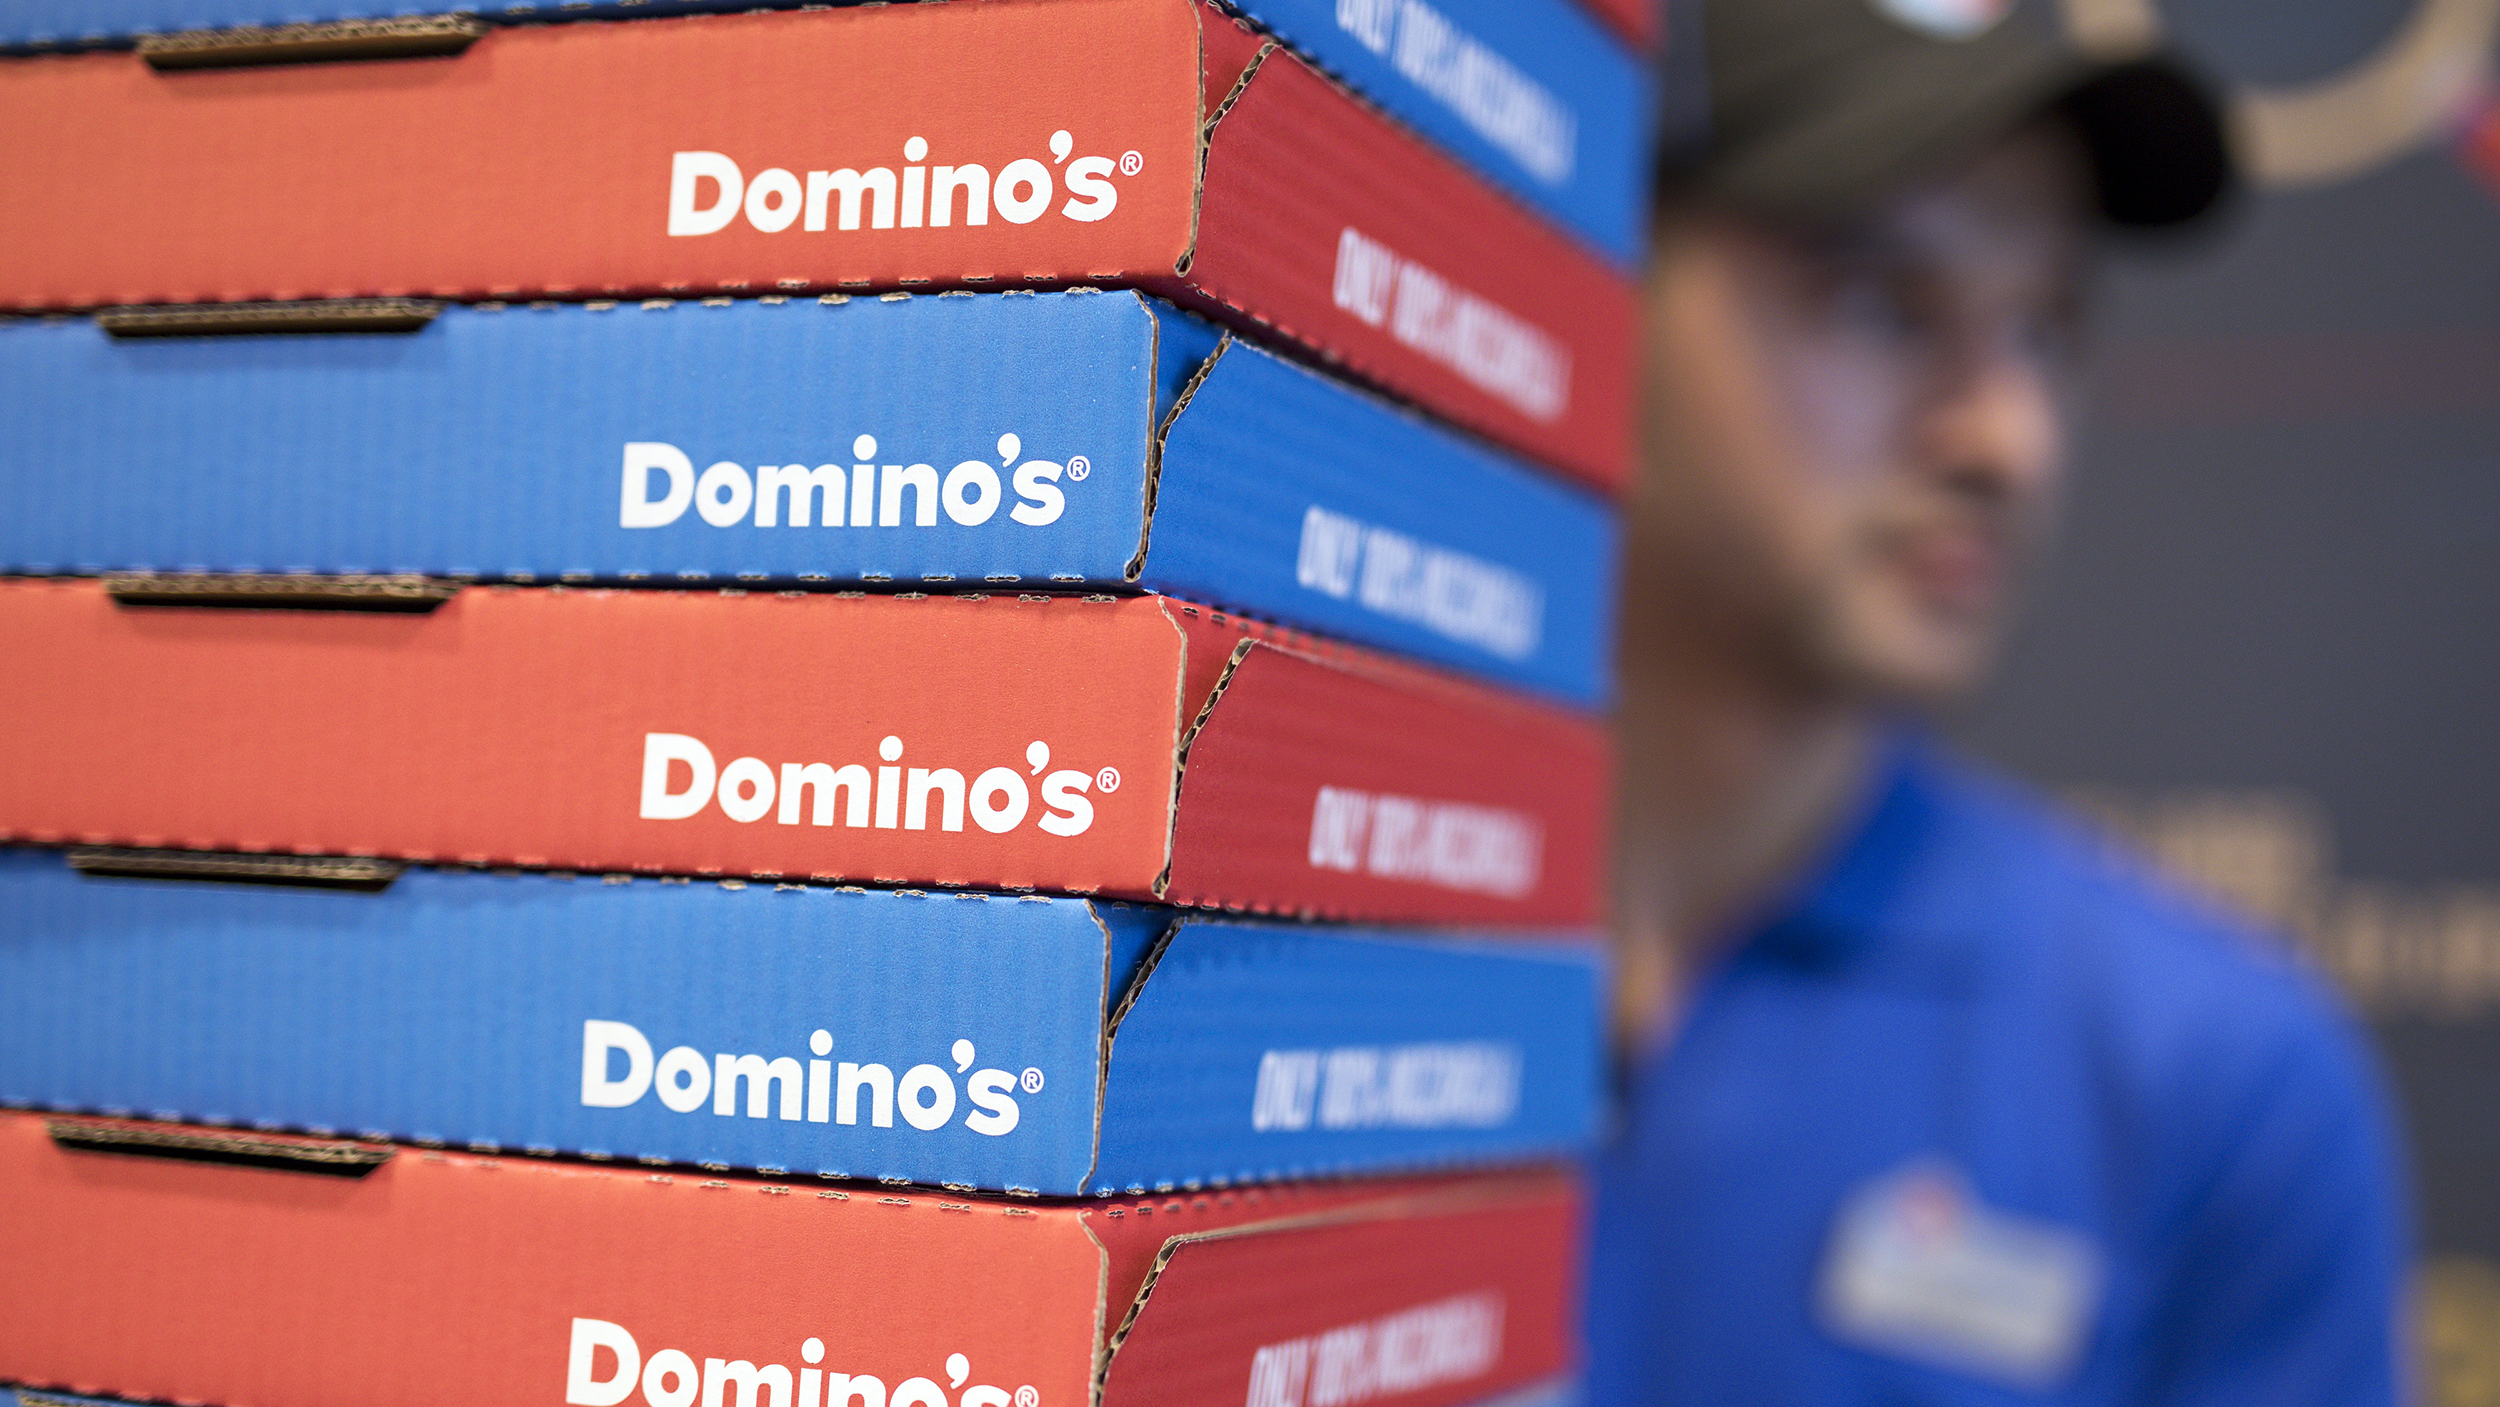 Domino's pizza now delivers to 150,000 outdoor hotspots on